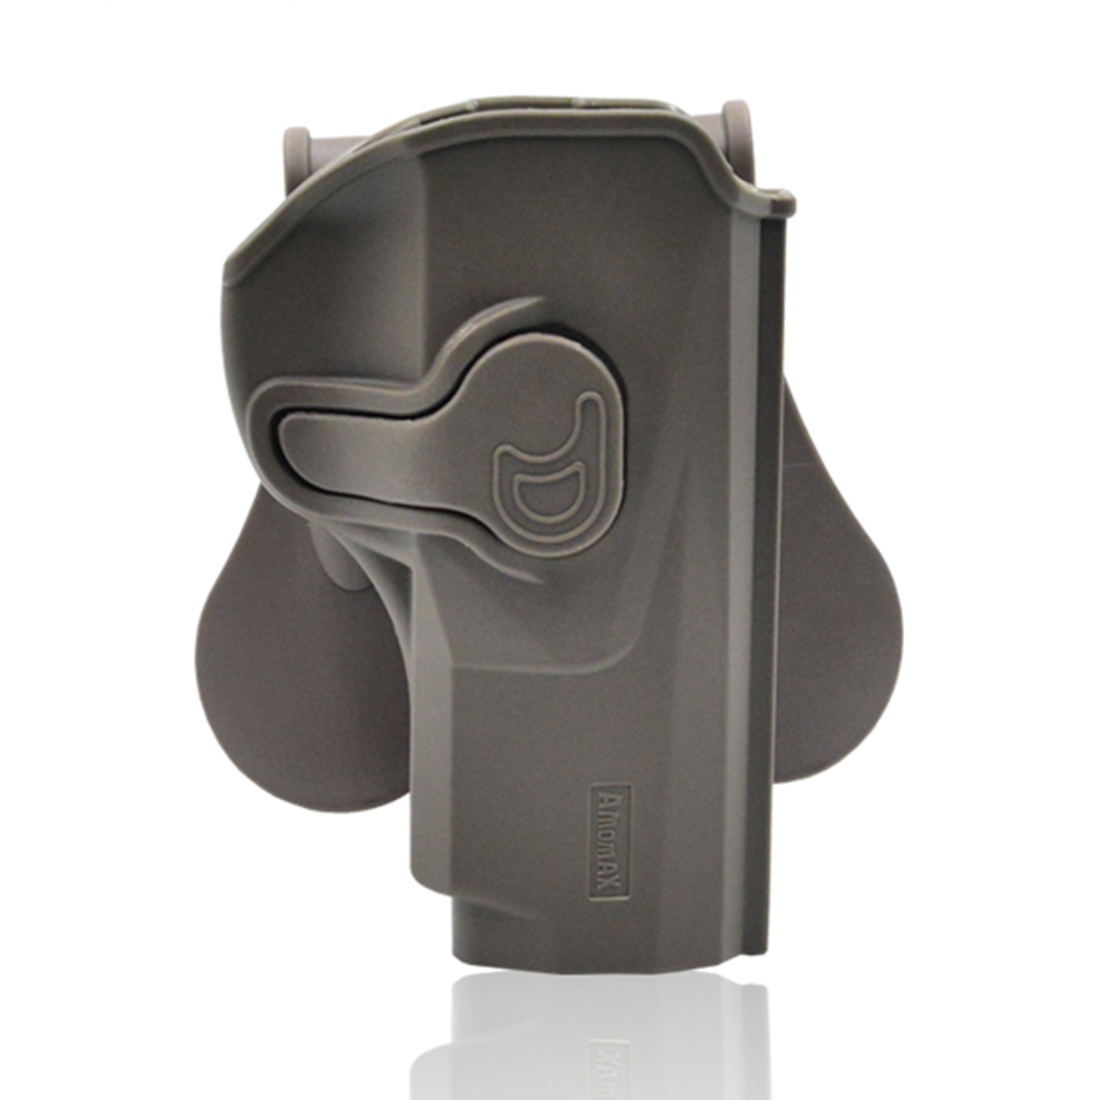 Surwish Adjustable Tactical Holster For Beretta Px4 Storm Outdoors Tactics Accessories New - Right-Handed Tan